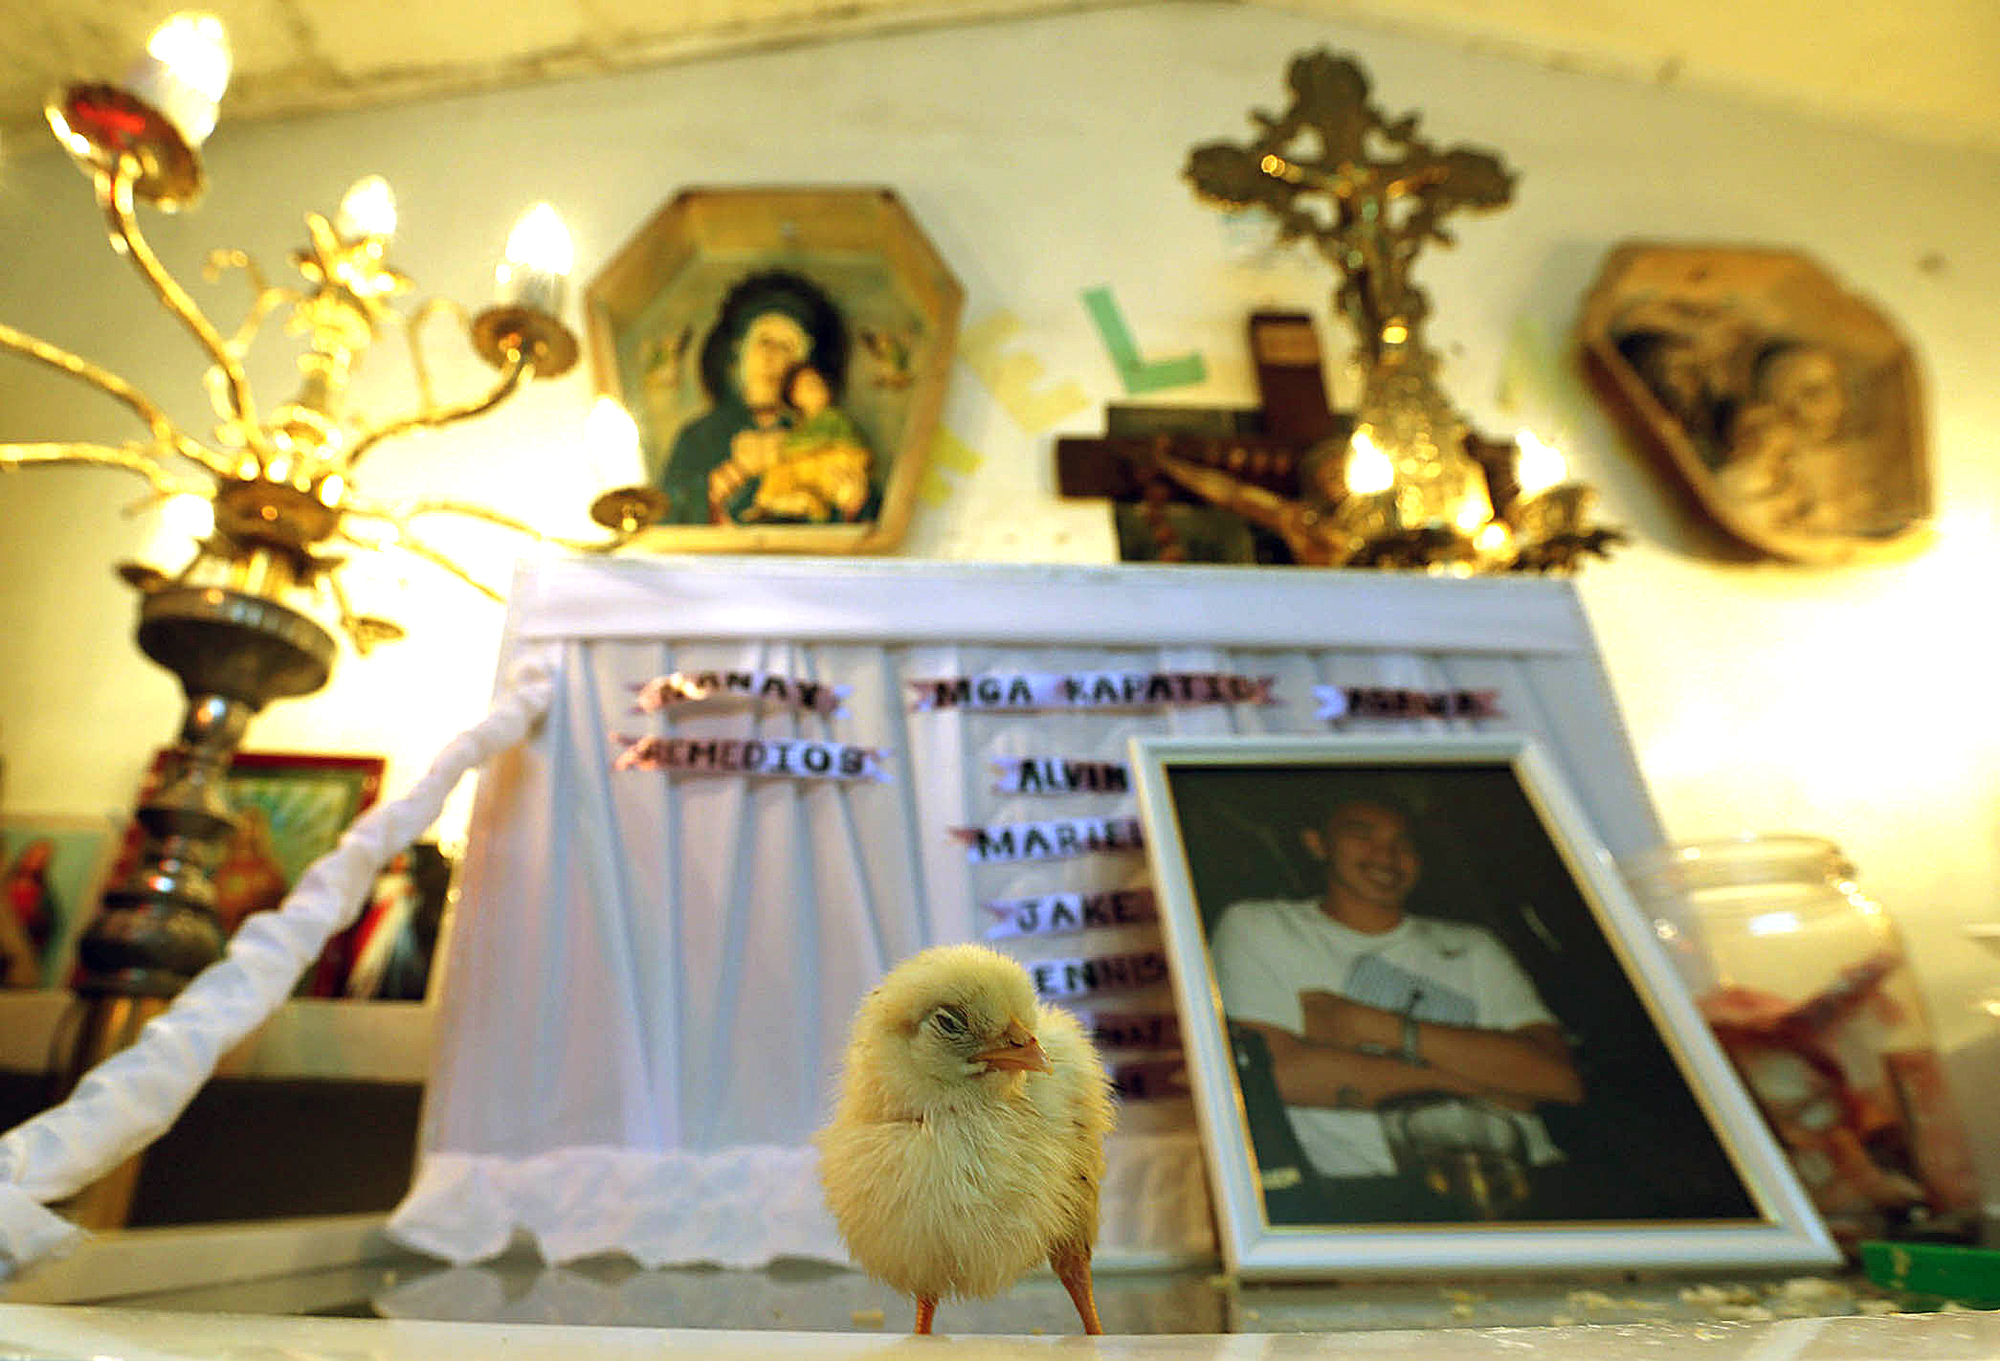 A chick rests on top of the coffin of pedicab driver Eric Sison who was killed by the police during a drug operation on August 23,2016 at Barangay 43, Pasay City. In the Philippines, a chick is placed on the glass of a coffin of a person whose cause of death is questionable. It is a local custom where the chick pecking on the coffin's glass symbolizes the loved ones longing for justice, a play on bothering the conscience of the perpetrators.